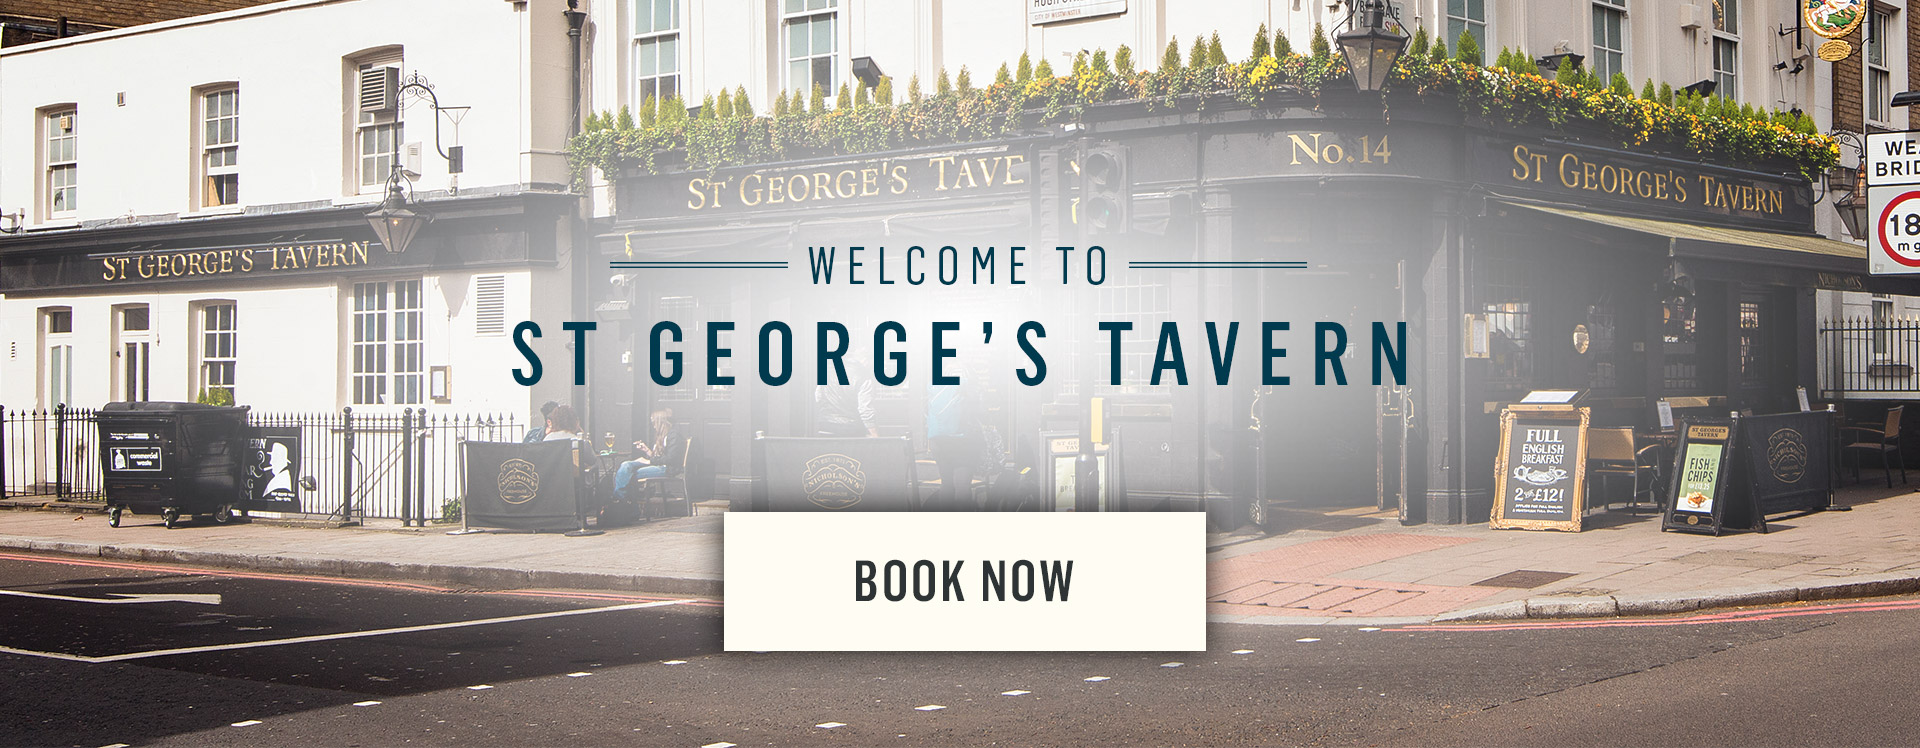 Welcome to The St George's Tavern - Book Now